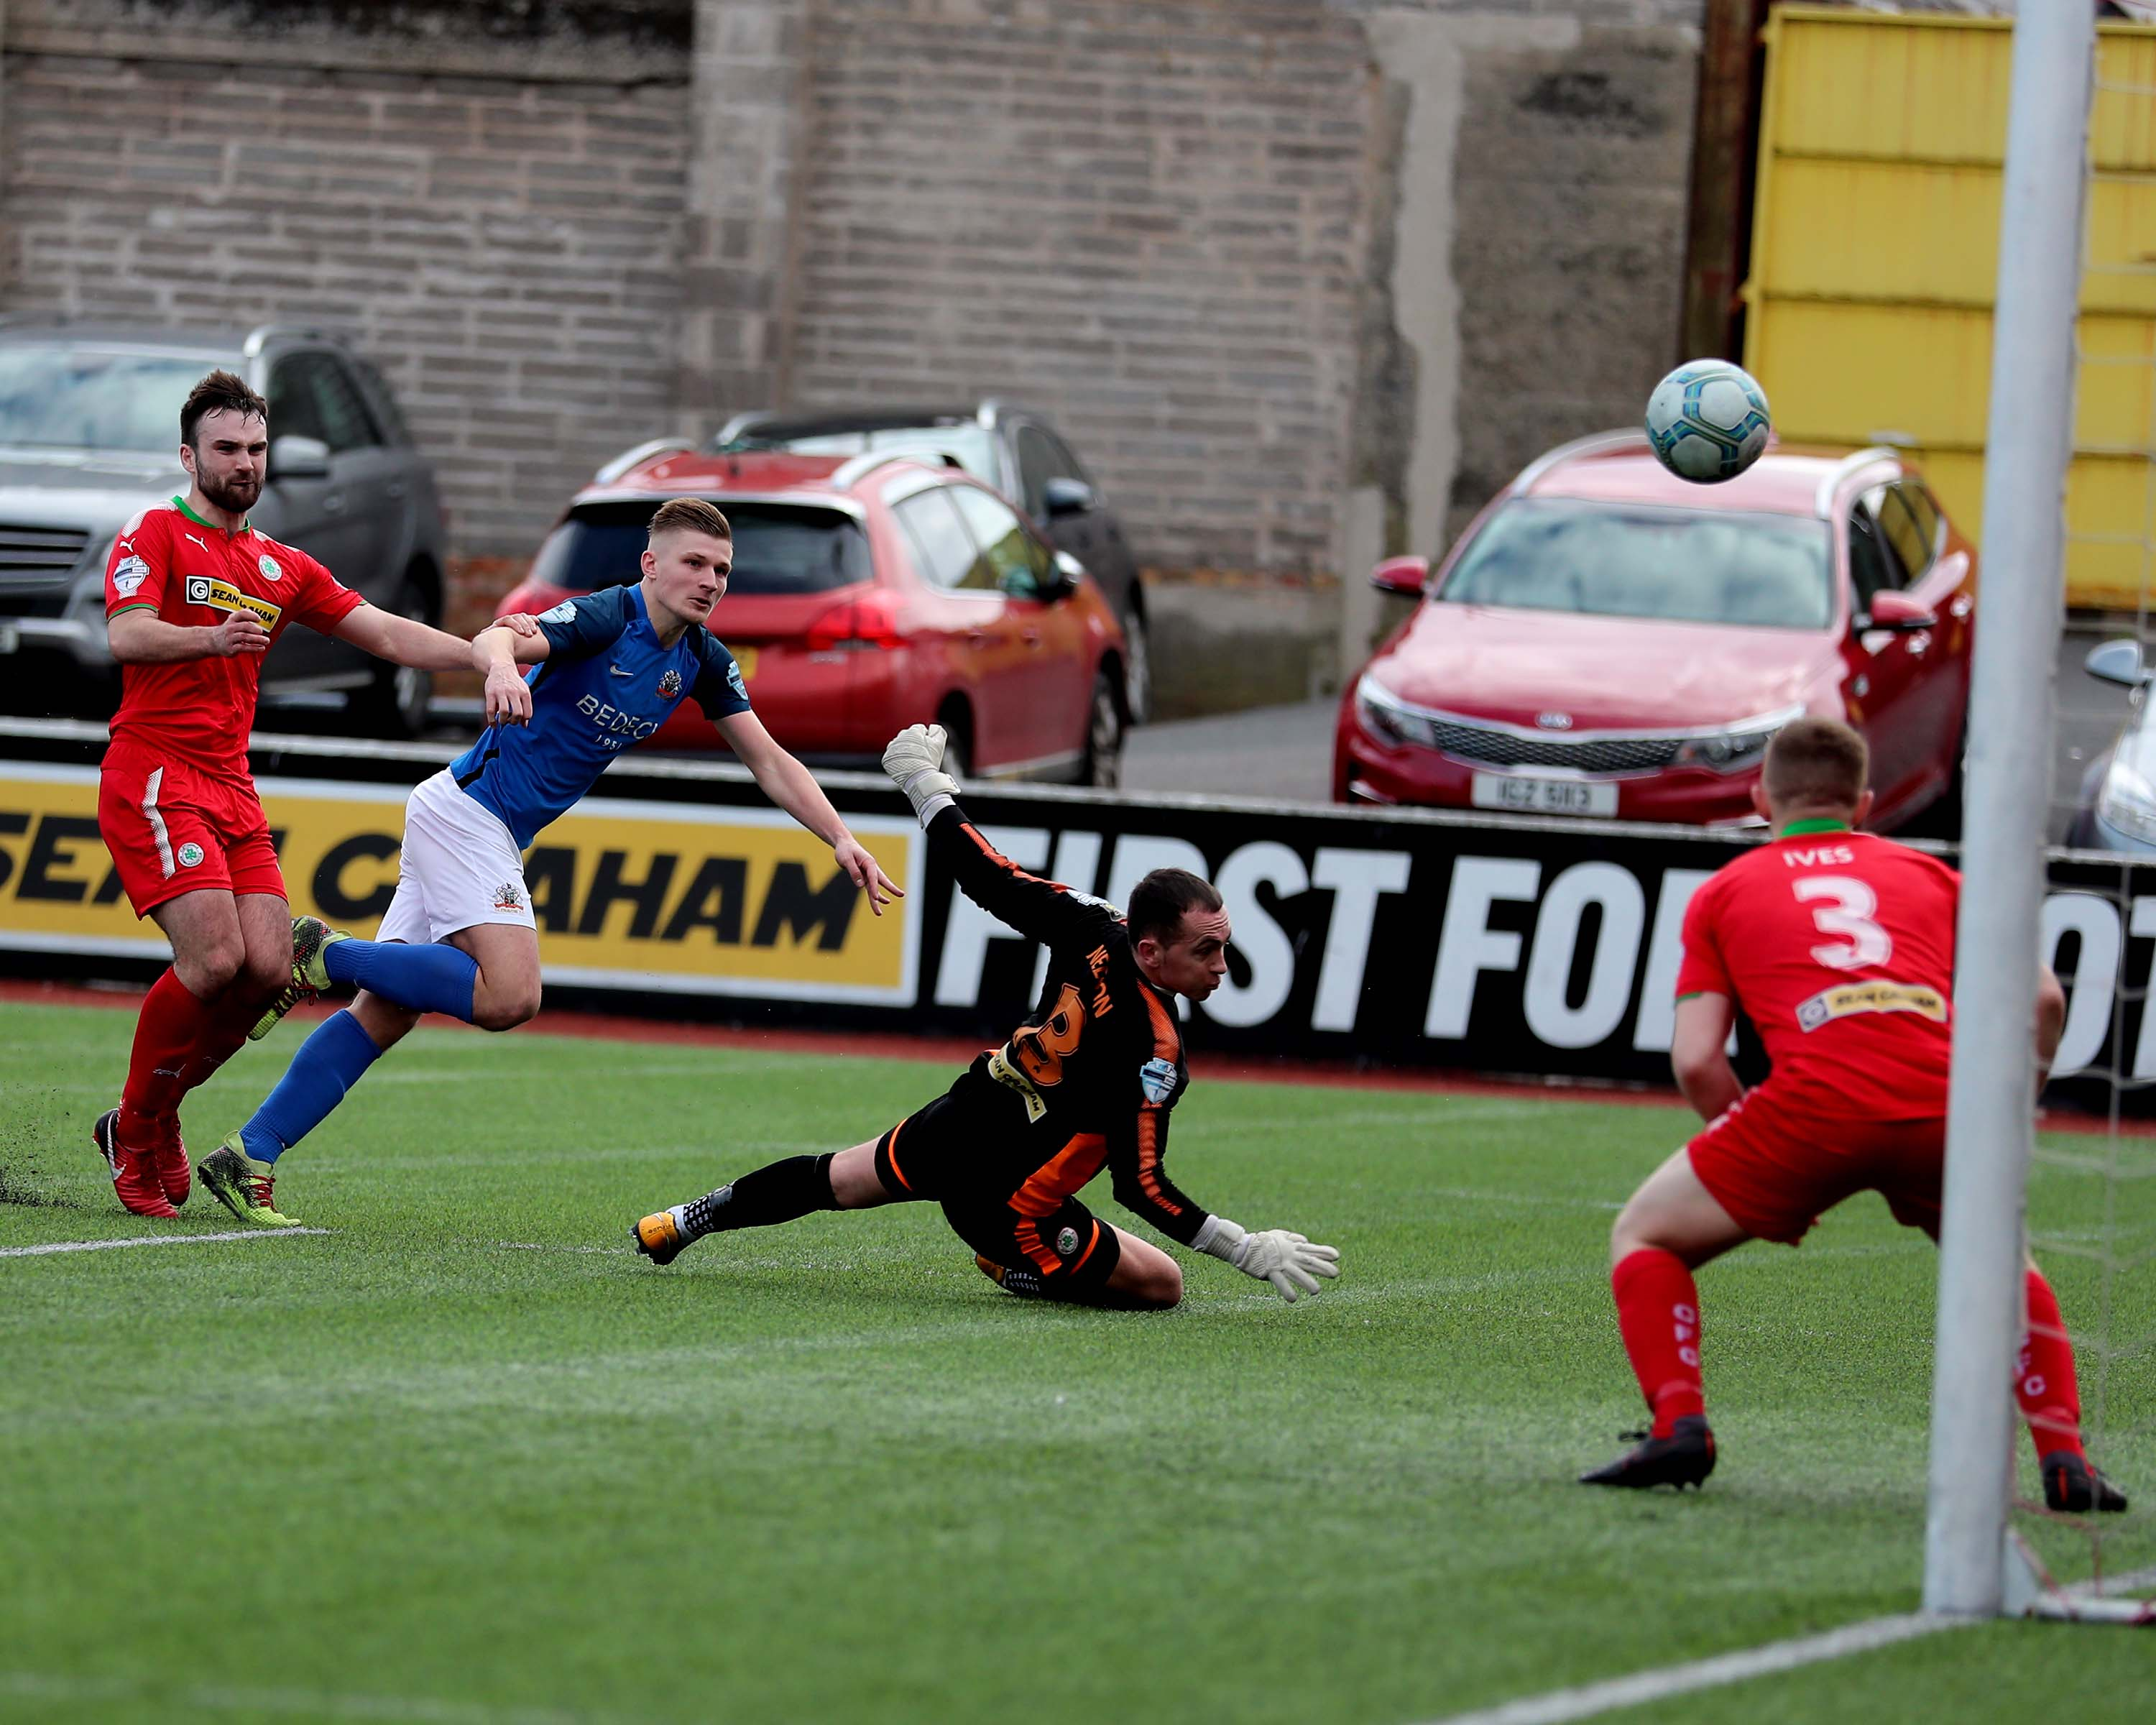 Lurgan Blues Get Back to Winning Ways with Convincing Win at Cliftonville